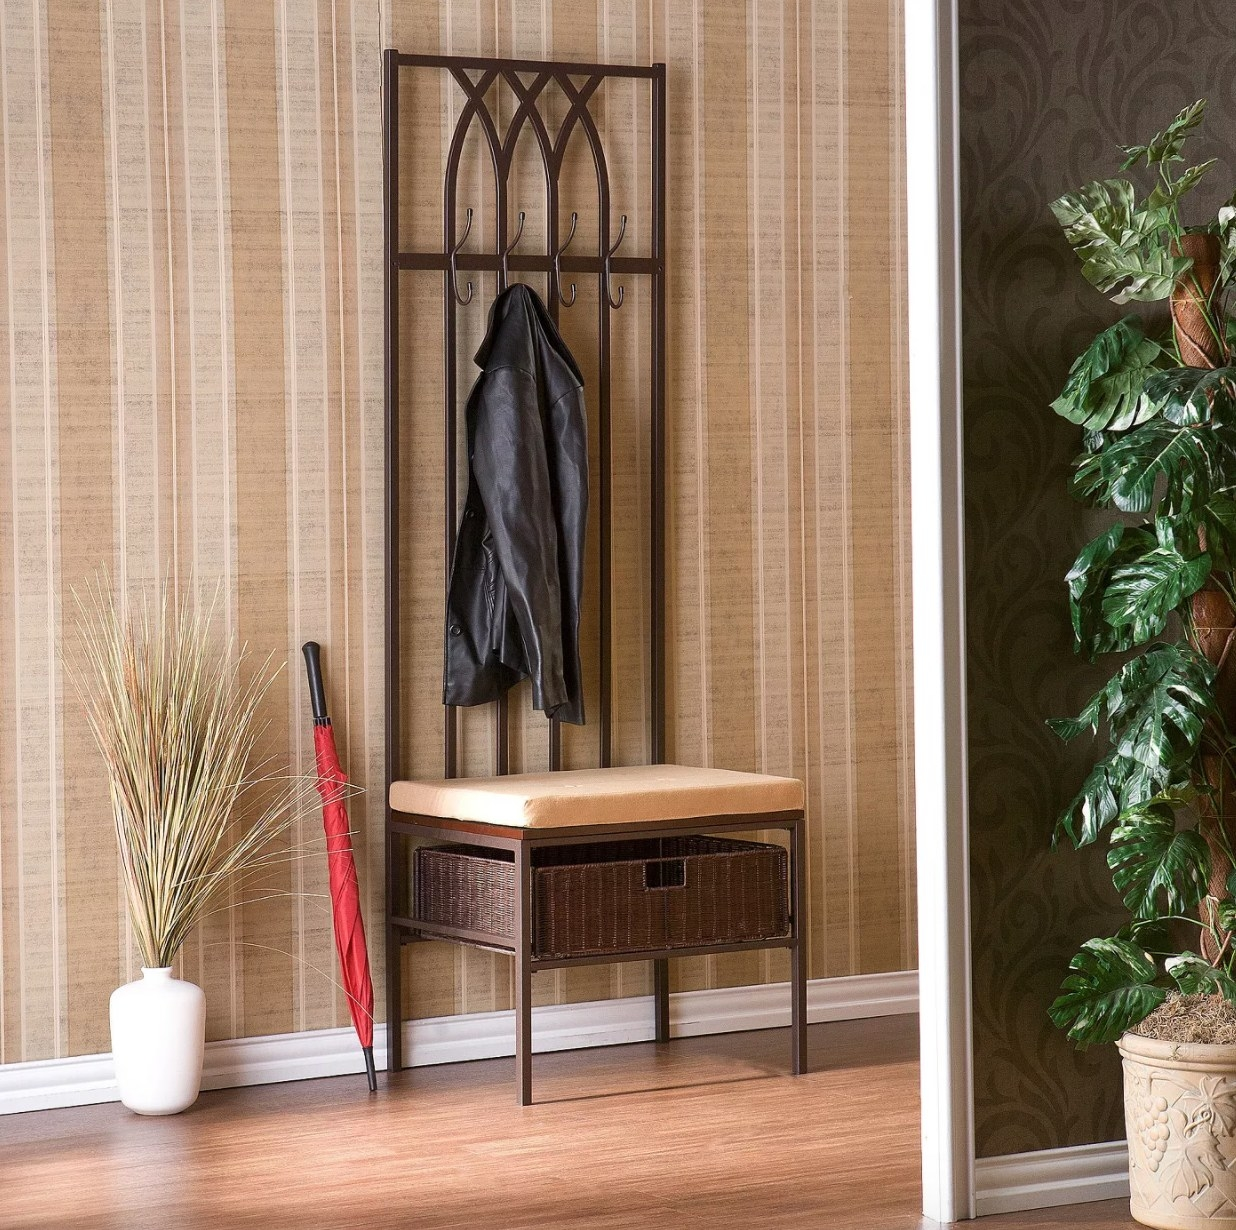 A dark brown entryway bench with cushion, storage basket, and coat hooks